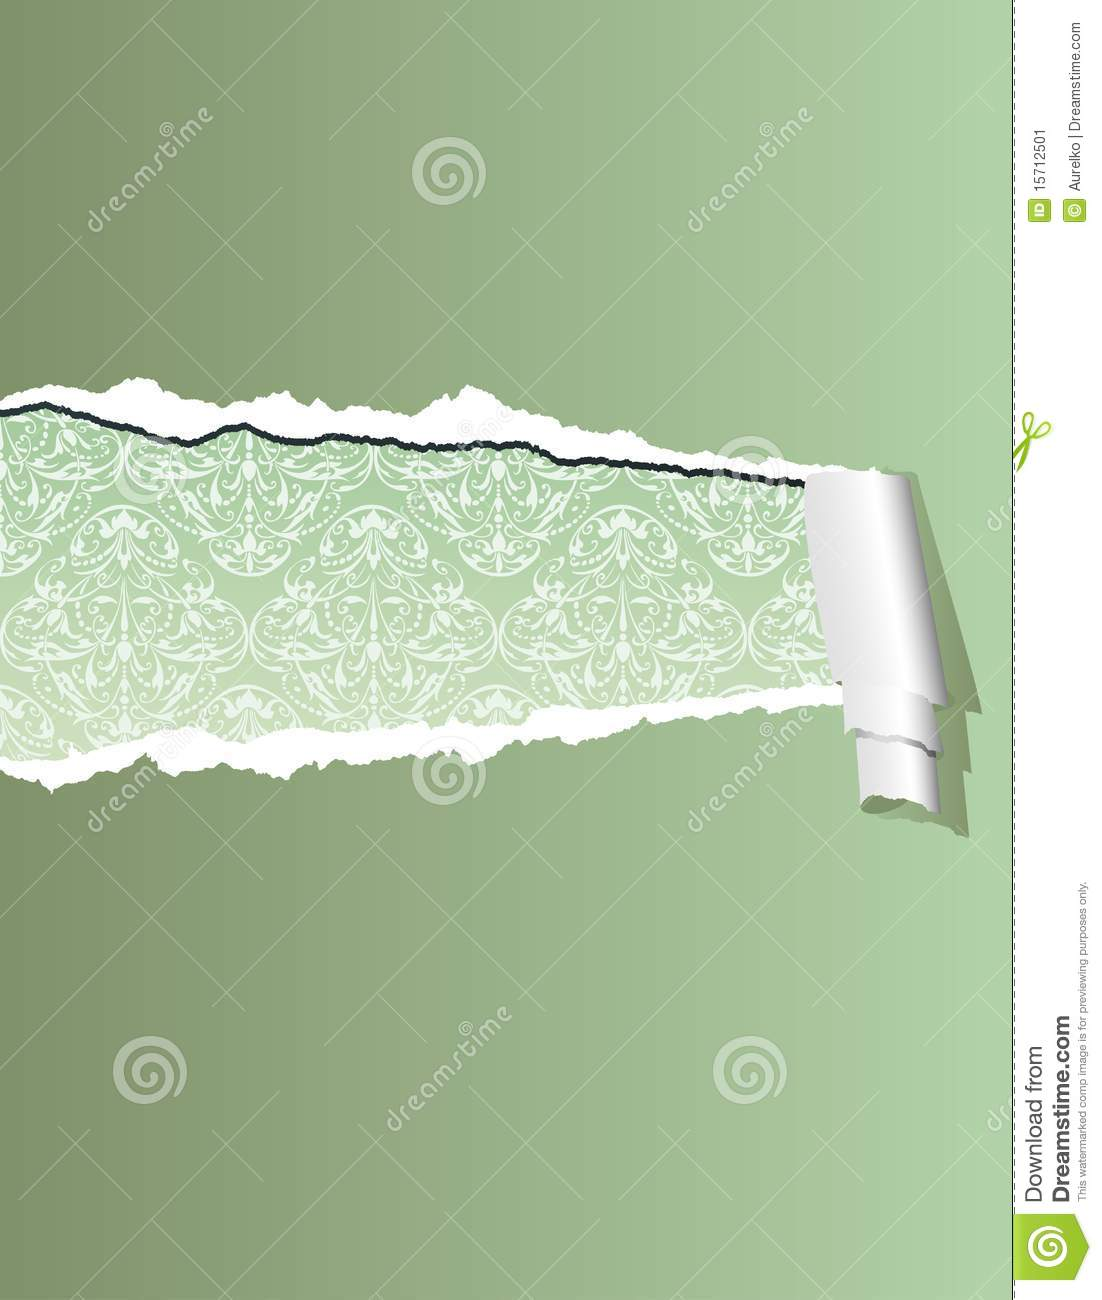 illustration with olive green ripped wallpaper, layered and editable